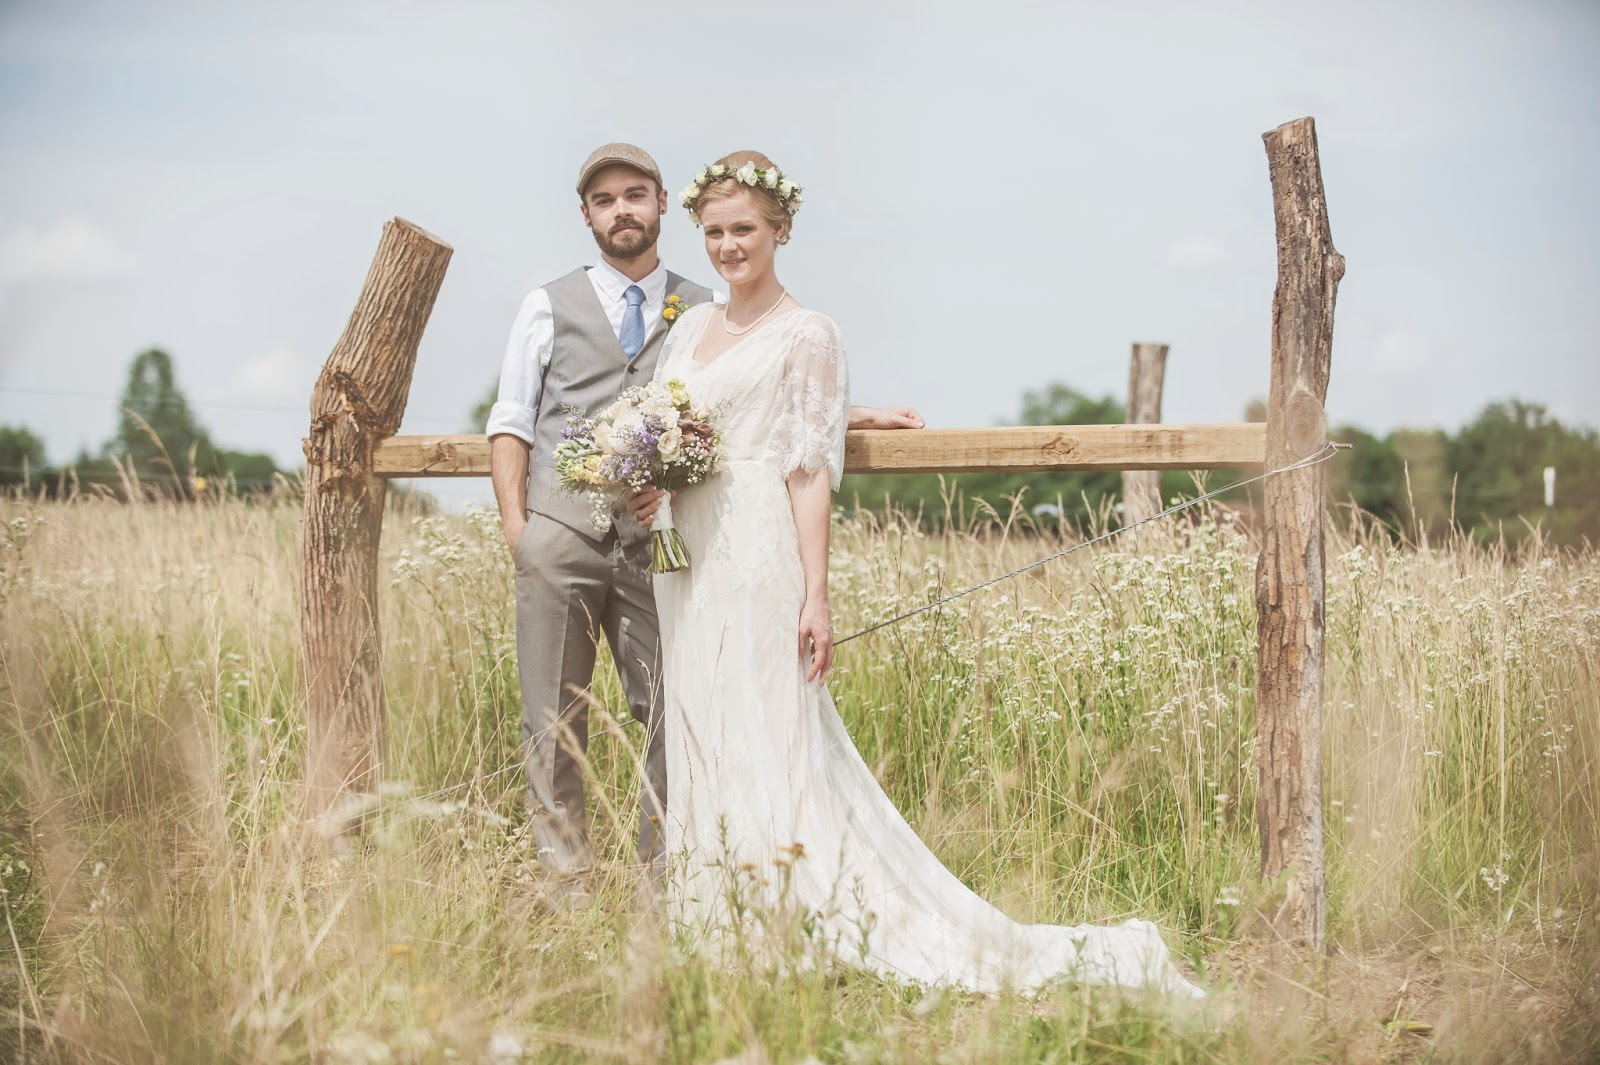 Vintage Bride and Groom in field